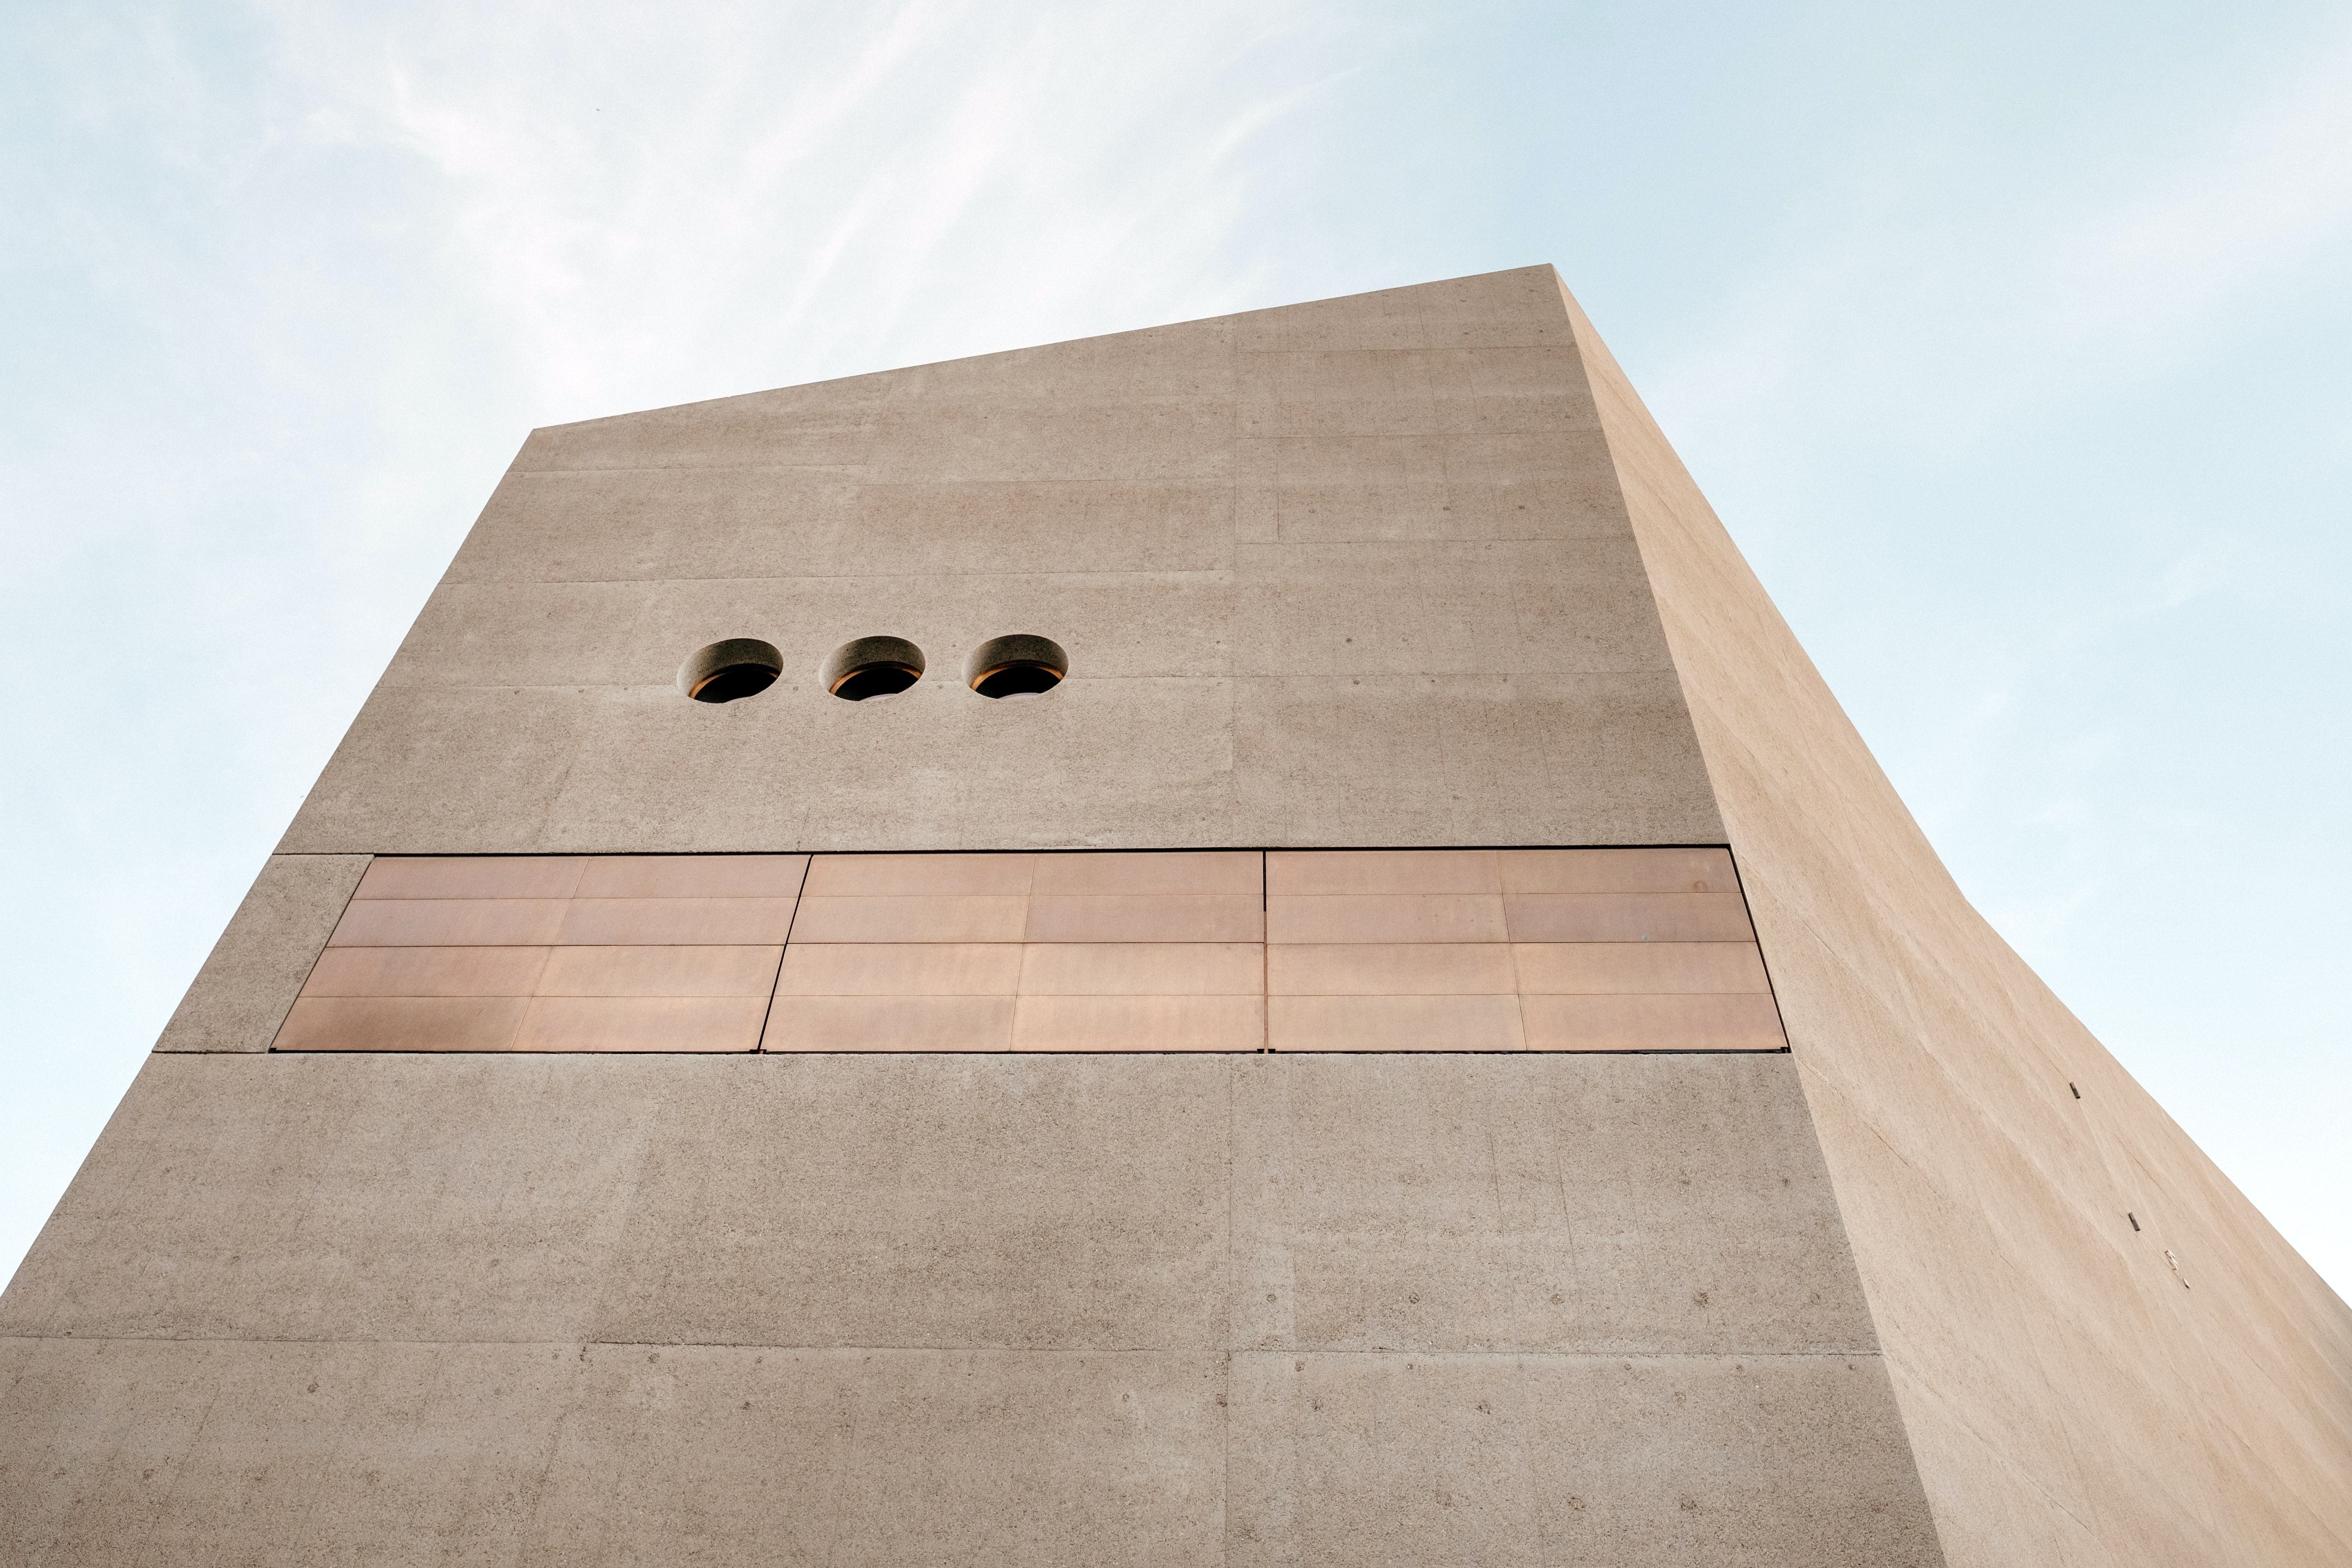 A large concrete slab of the Swiss National Museum building